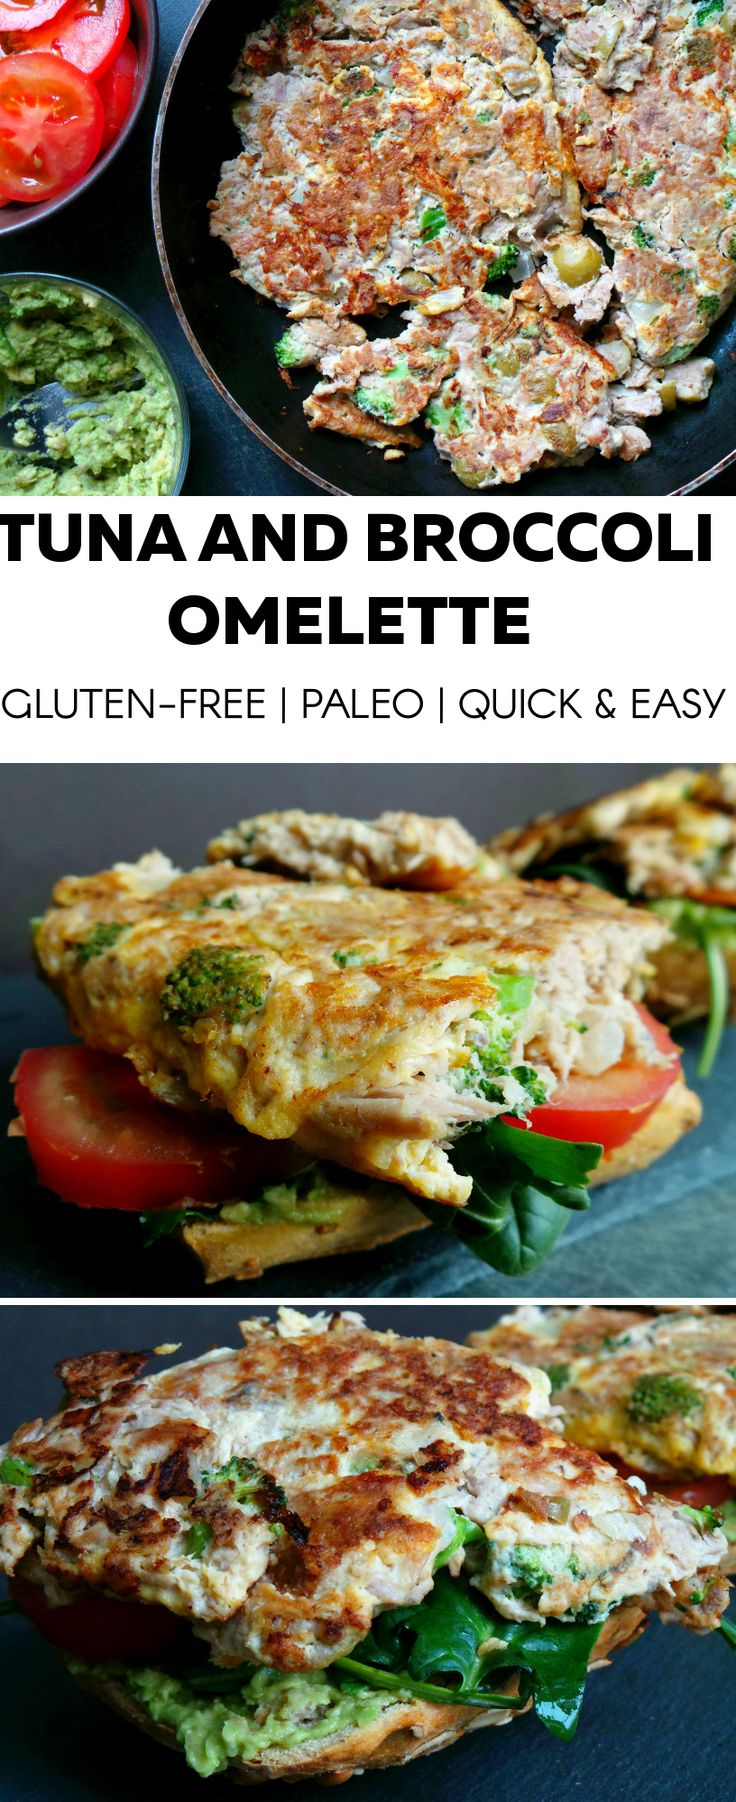 High protein tuna and broccoli omelette. Perfect as breakfast, lunch or dinner - whenever you don't have time to cook, this omelette just takes 10 minutes. To make it gluten-free and paleo: eat without the bread - is just as delicious, maybe even a little better.